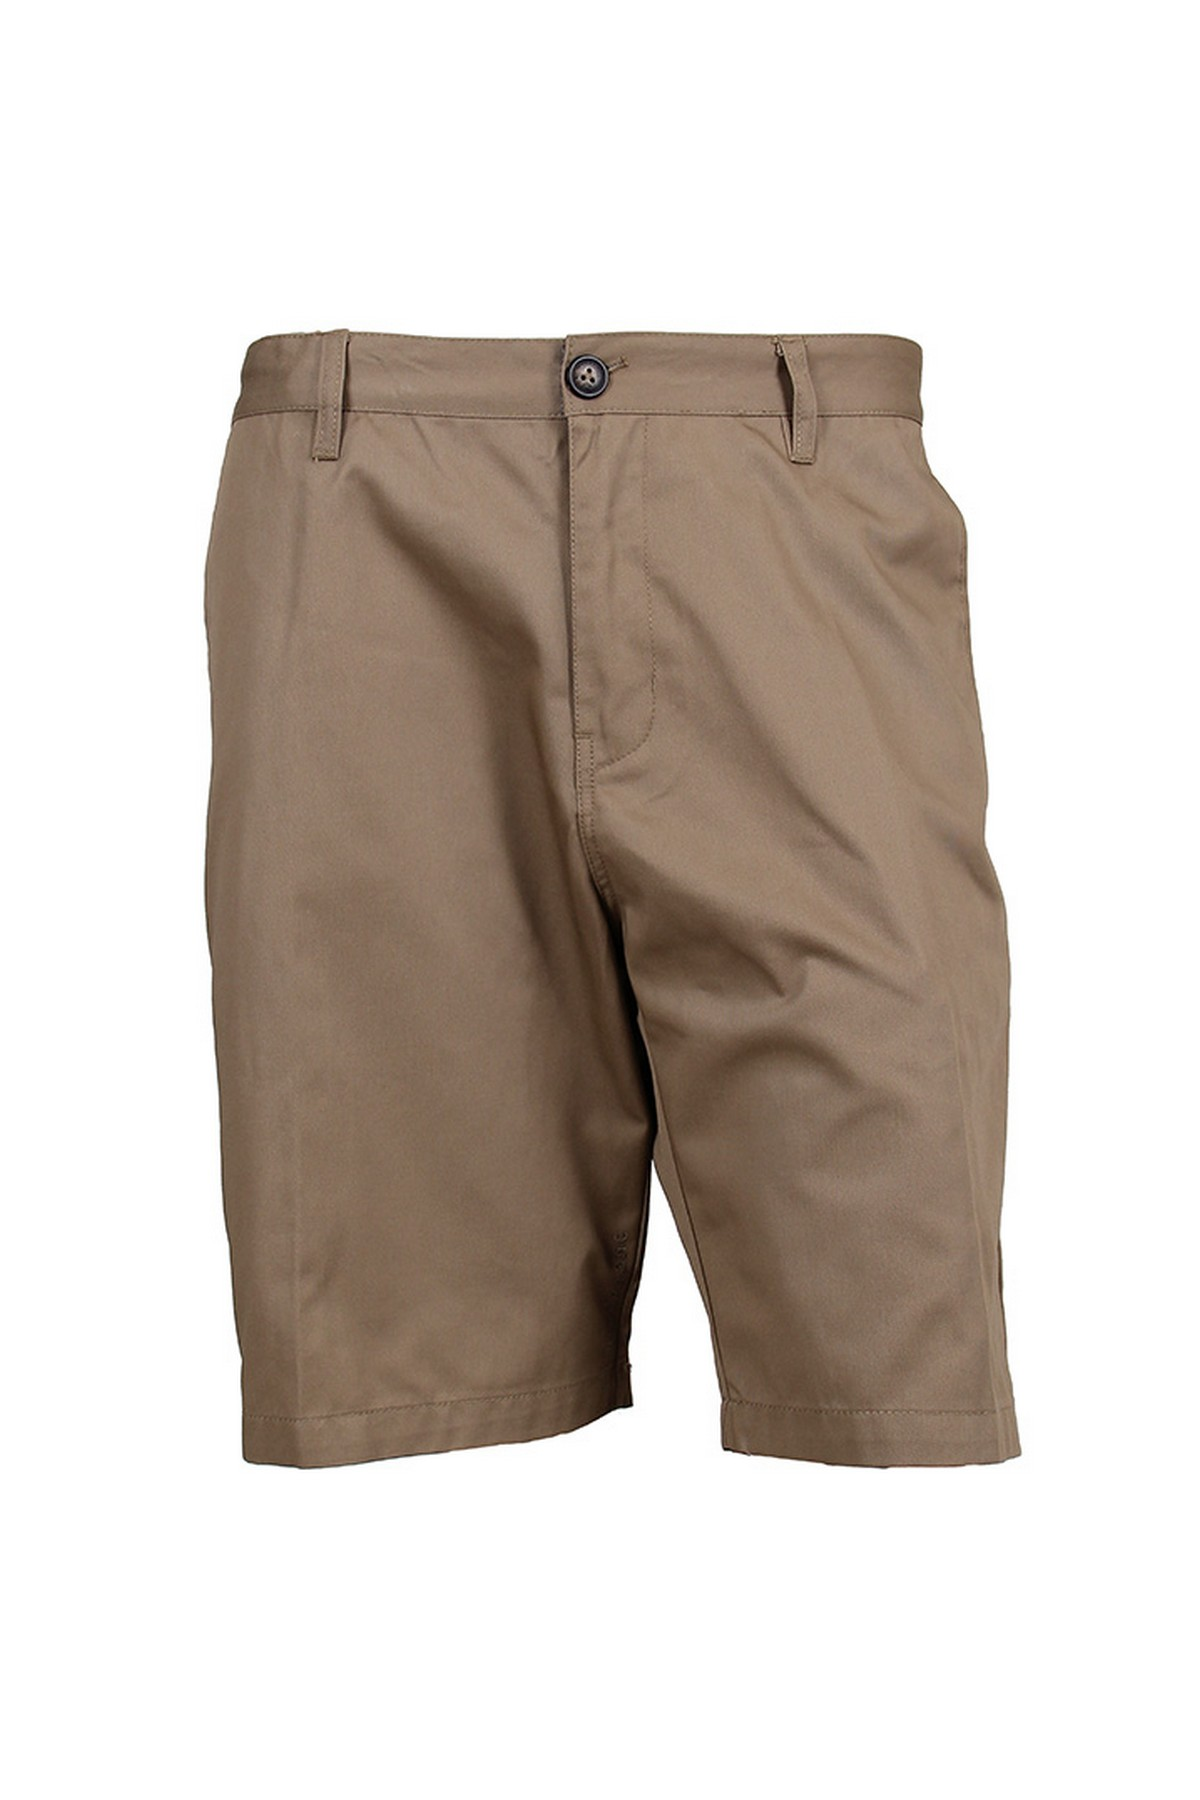 Billabong M1WK01-0815